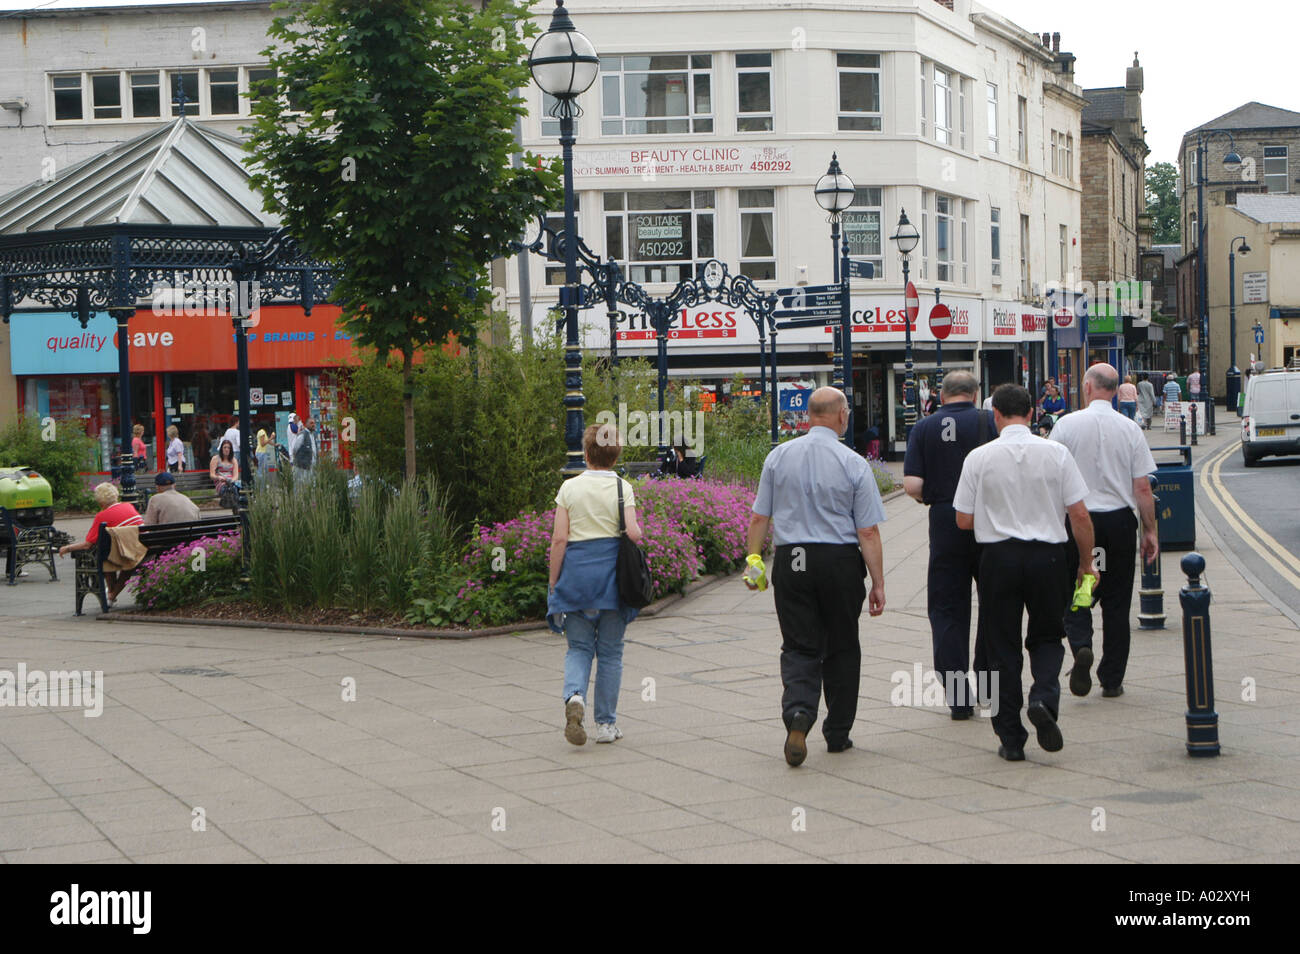 Pedestrians walking through the centre of the town of Dewsbury in England - Stock Image